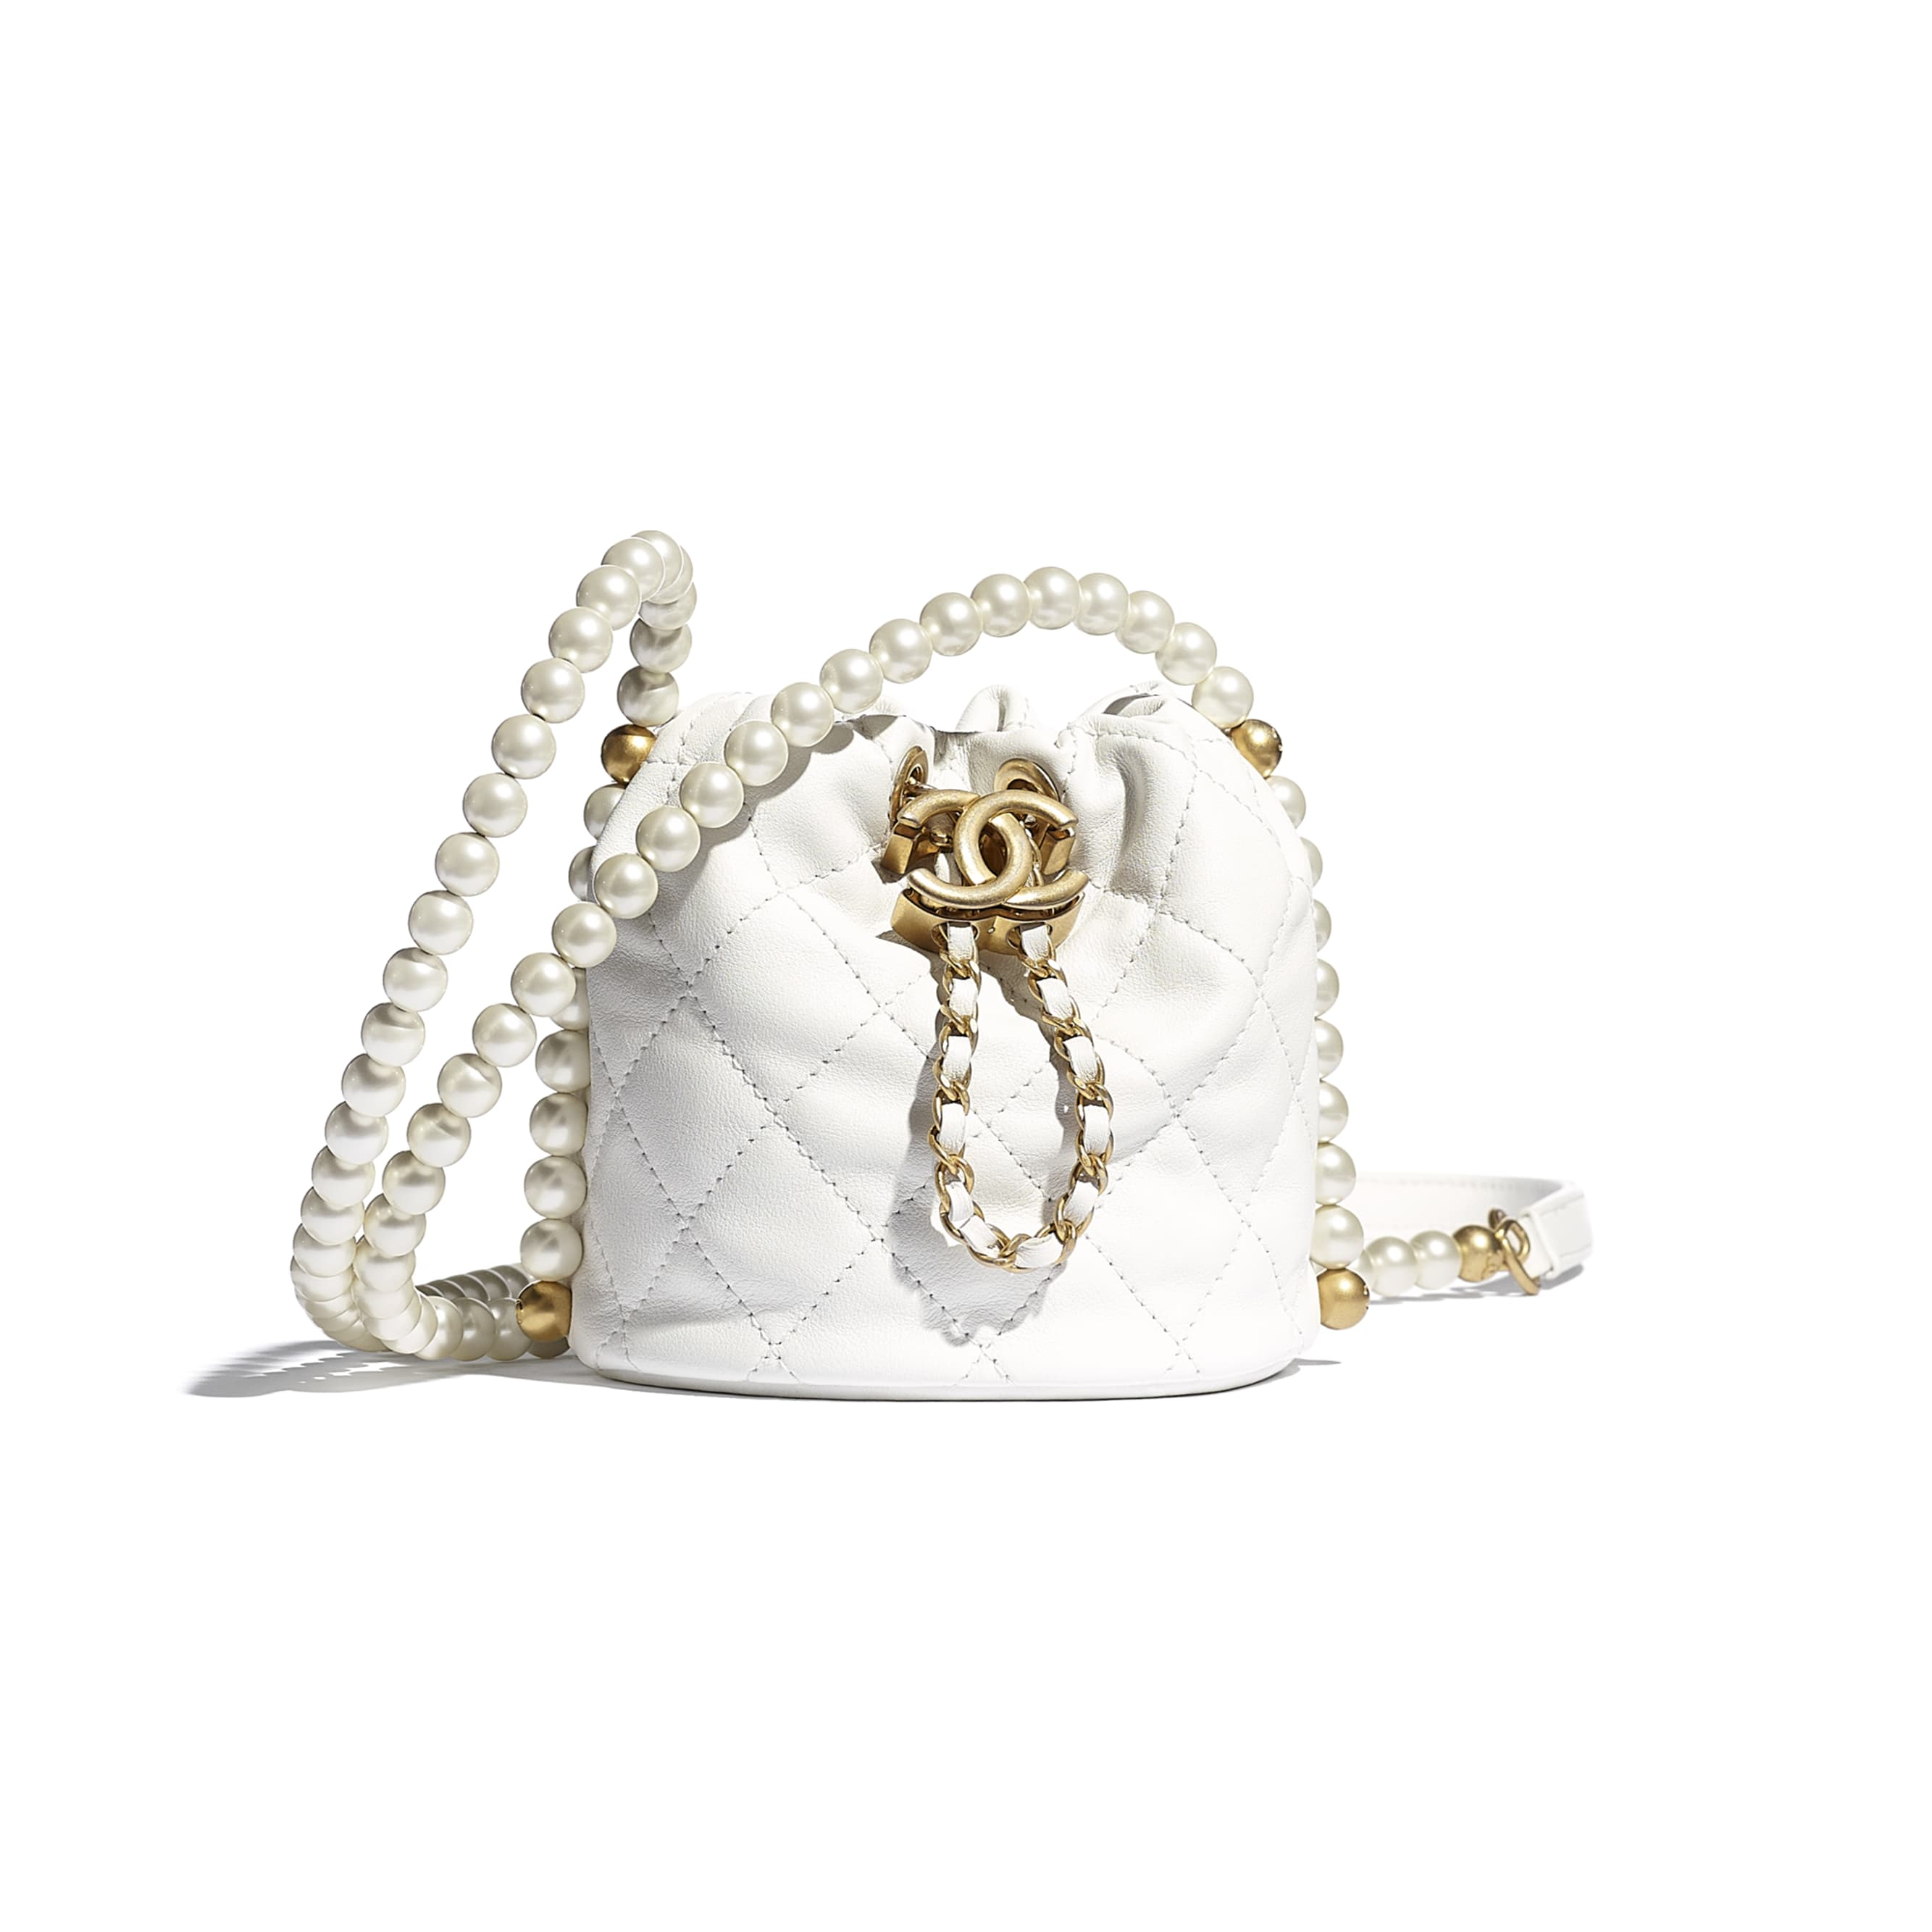 Mini Drawstring Bag - White - Calfskin, Imitation Pearls & Gold-Tone Metal - CHANEL - Default view - see standard sized version